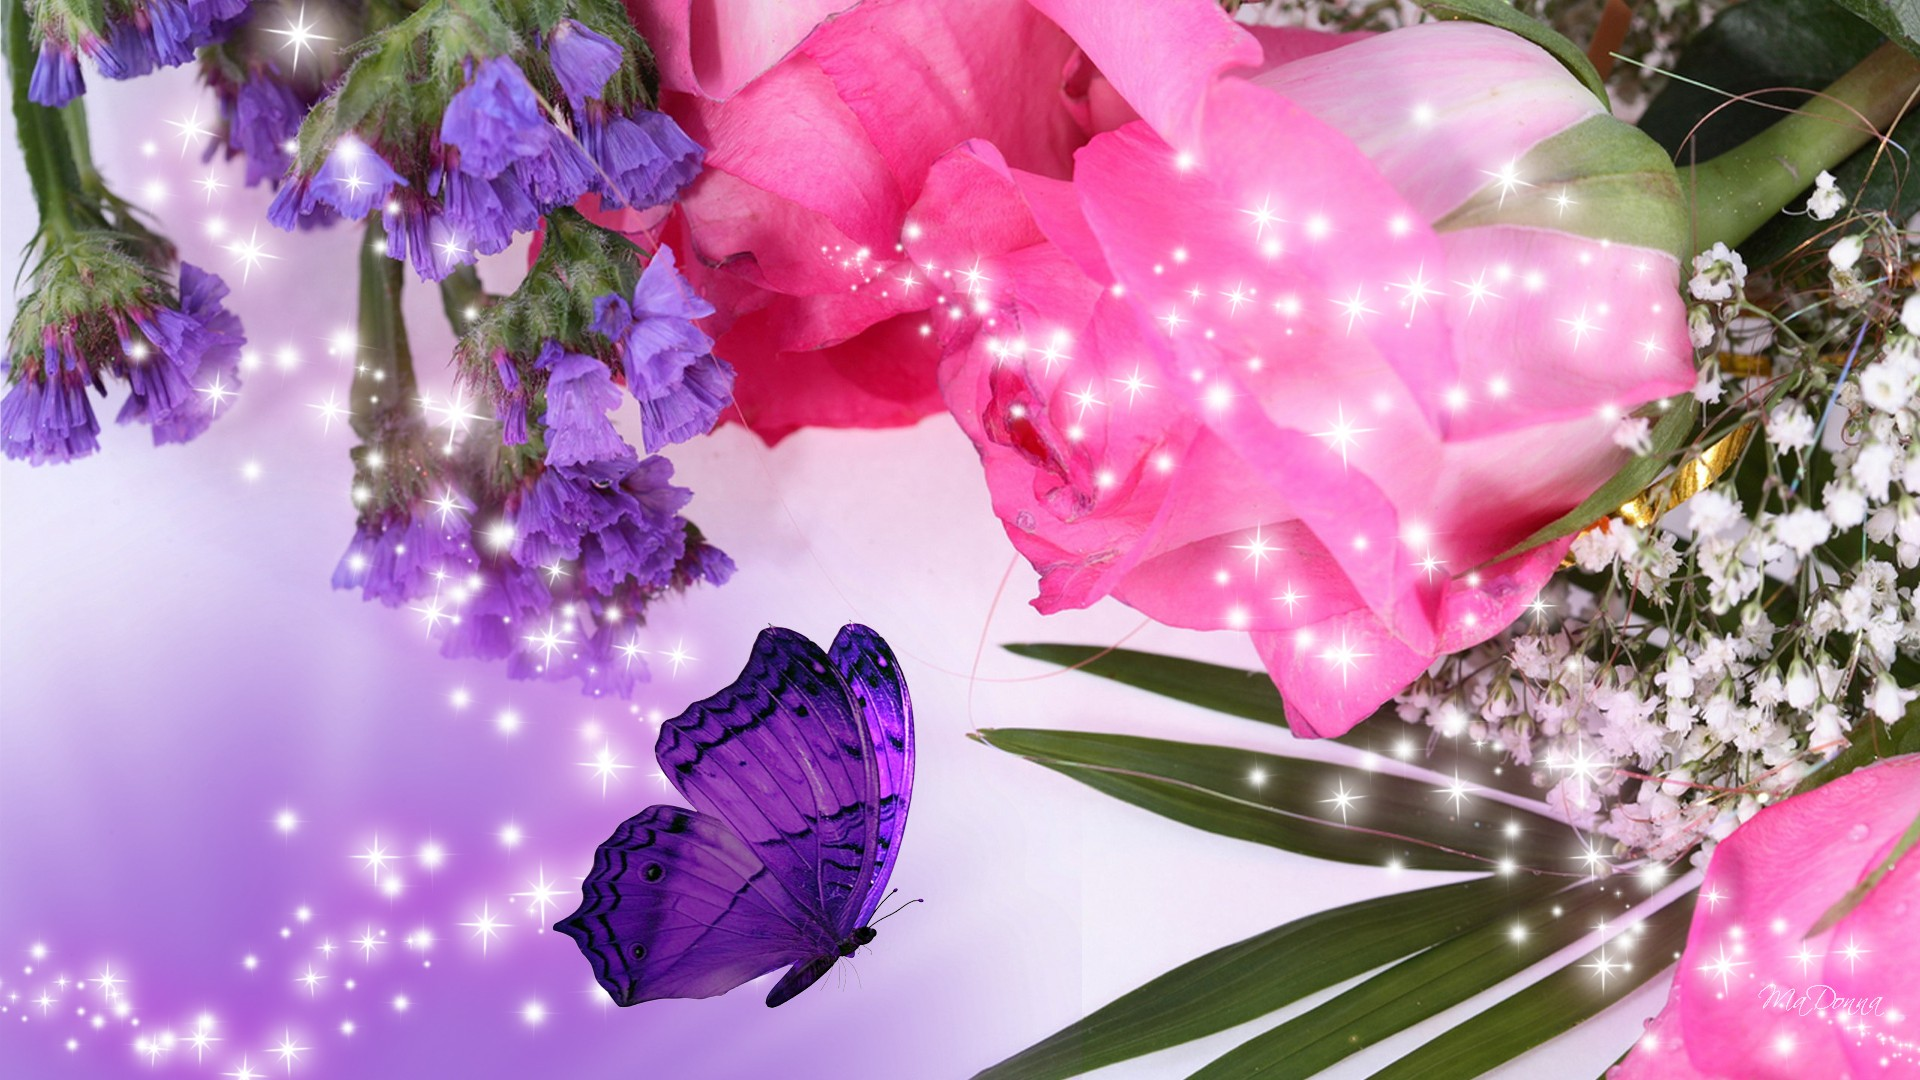 Purple rose flower 12 widescreen wallpaper hdflowerwallpaper purple rose flower widescreen wallpaper voltagebd